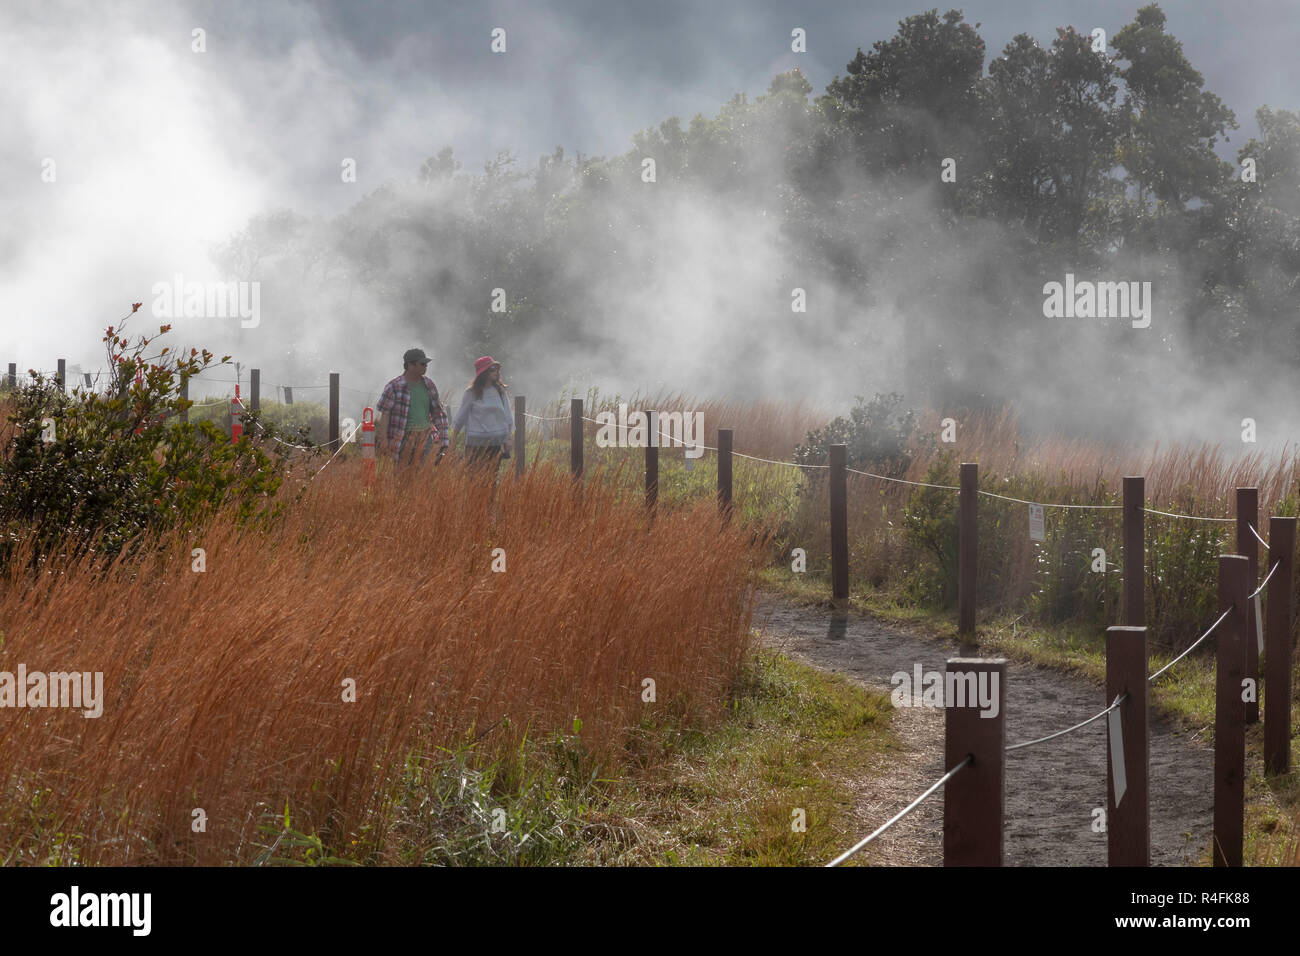 Hawaii Volcanoes National Park, Hawaii - Hikers on a trail at the edge of the Kilauea volcano. The steam comes from the volcano's steam vents. - Stock Image